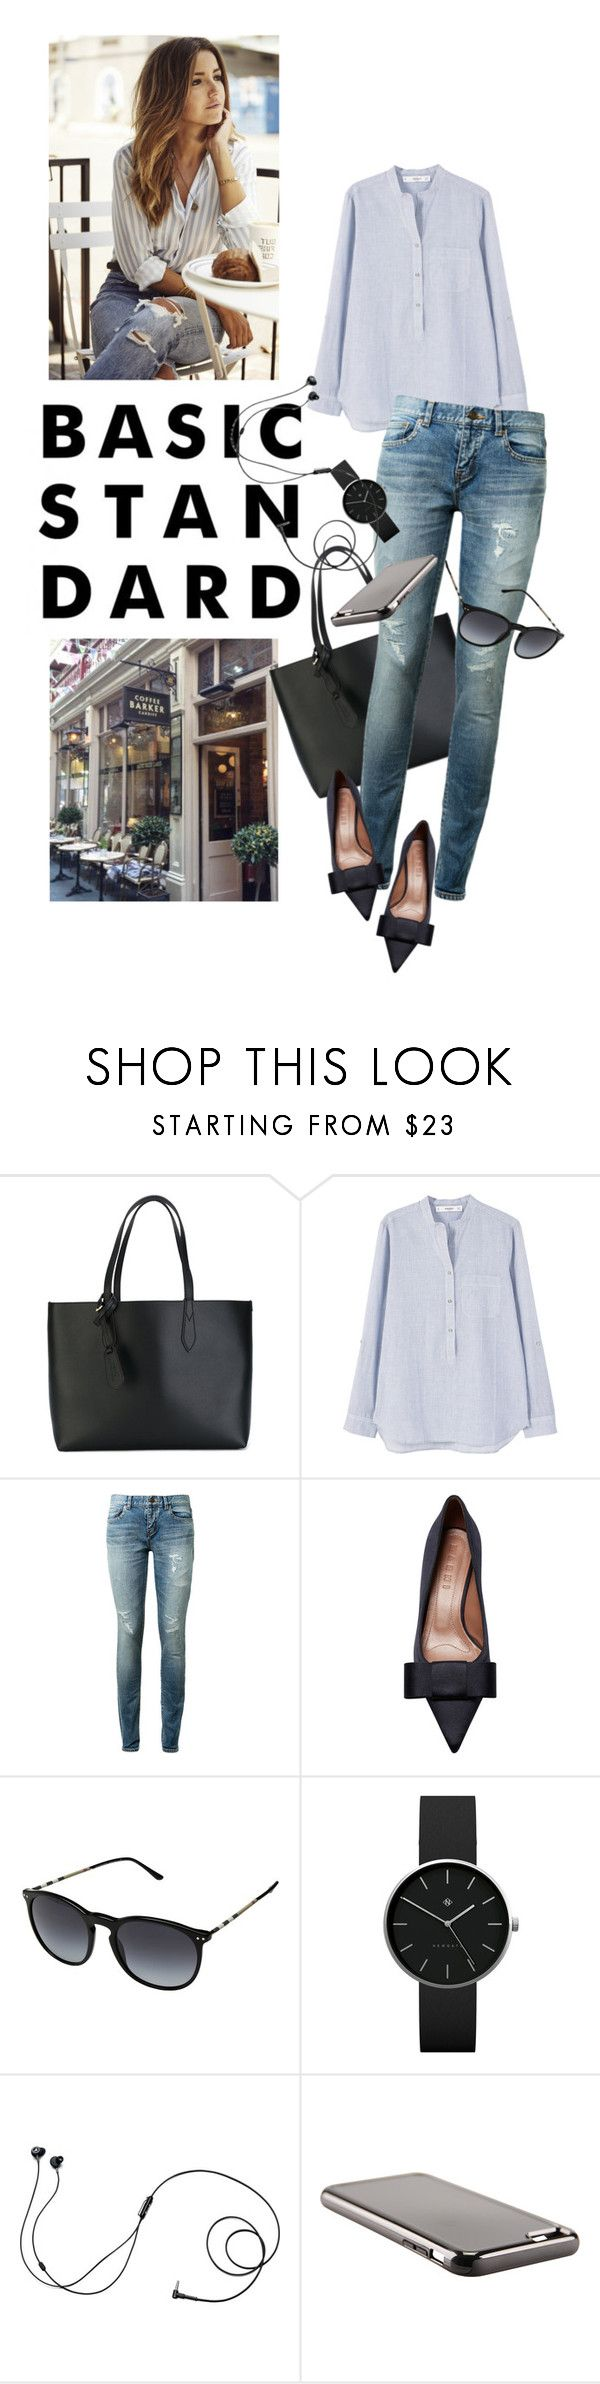 """""""BasicStandard"""" by reginakos ❤ liked on Polyvore featuring Barker, Burberry, MANGO, Yves Saint Laurent, Marni, Newgate, Marshall, SimpleOutfits, CasualChic and StreetChic"""